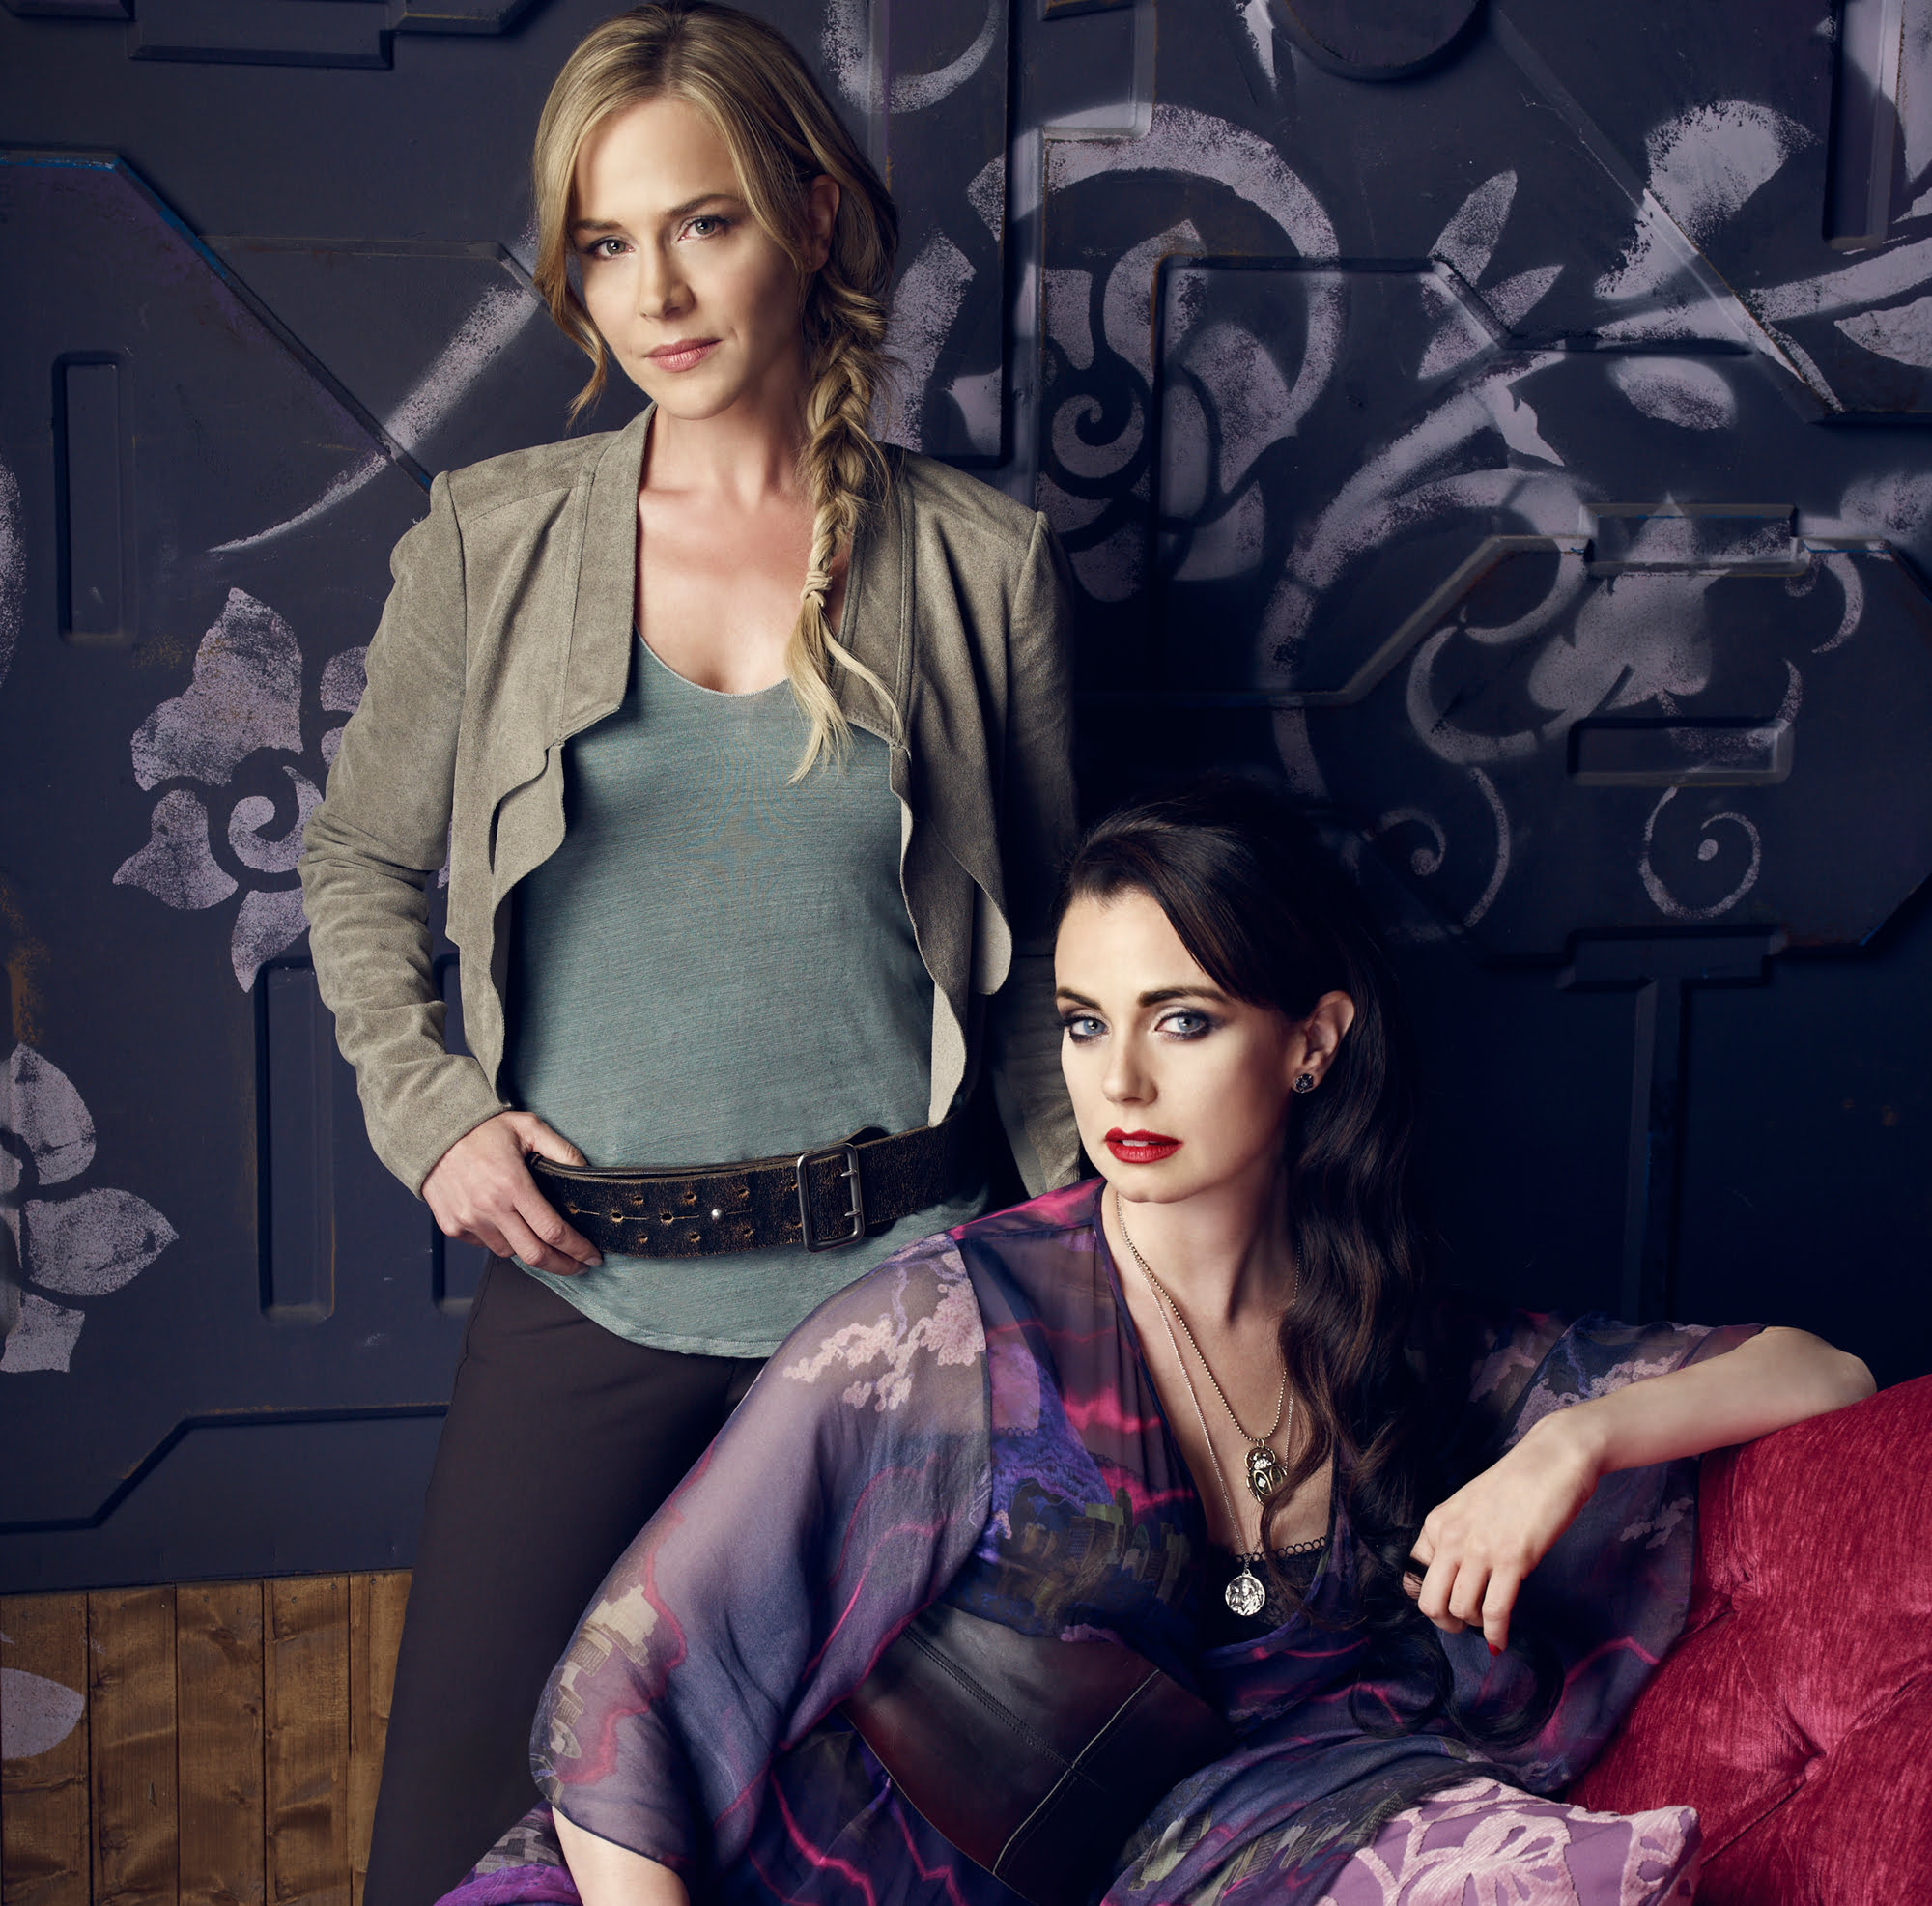 Julie Benz and Mia Kirshner in Defiance